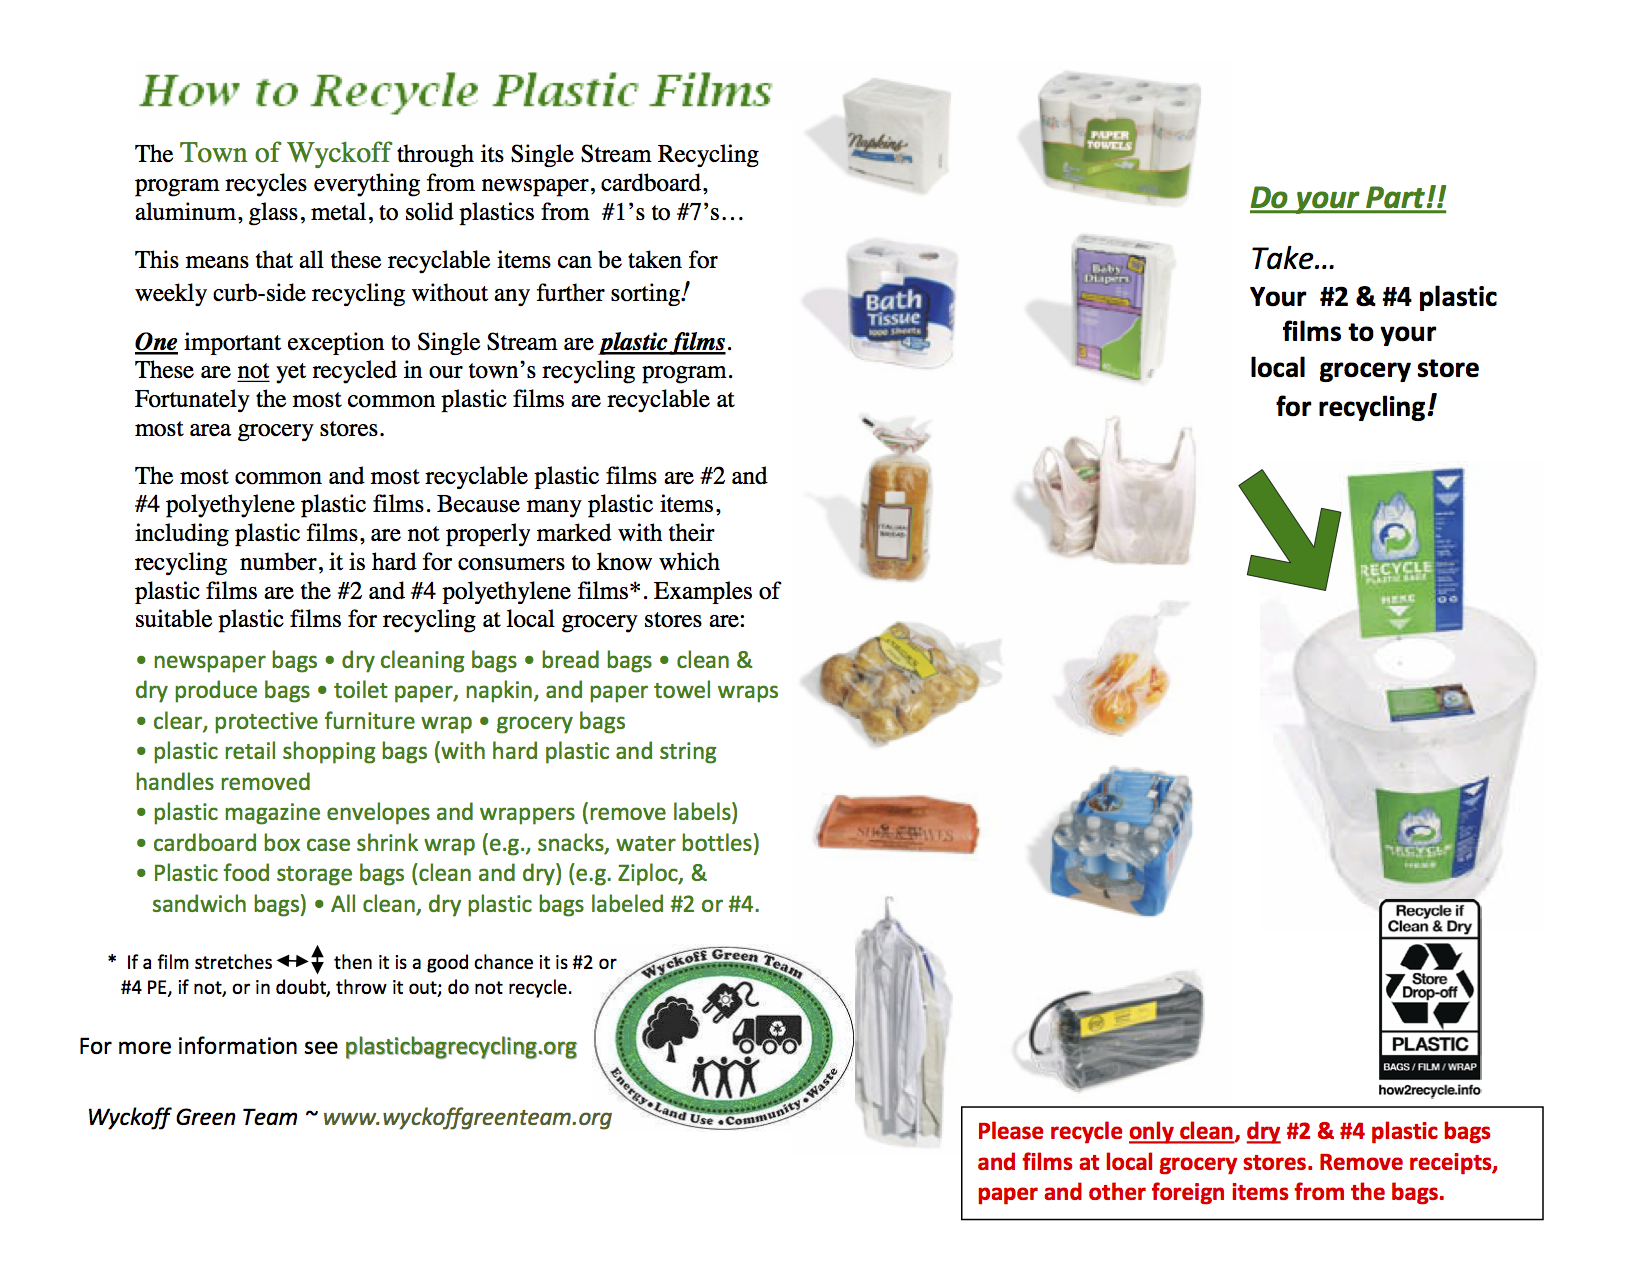 How To Recycle Plastic Films